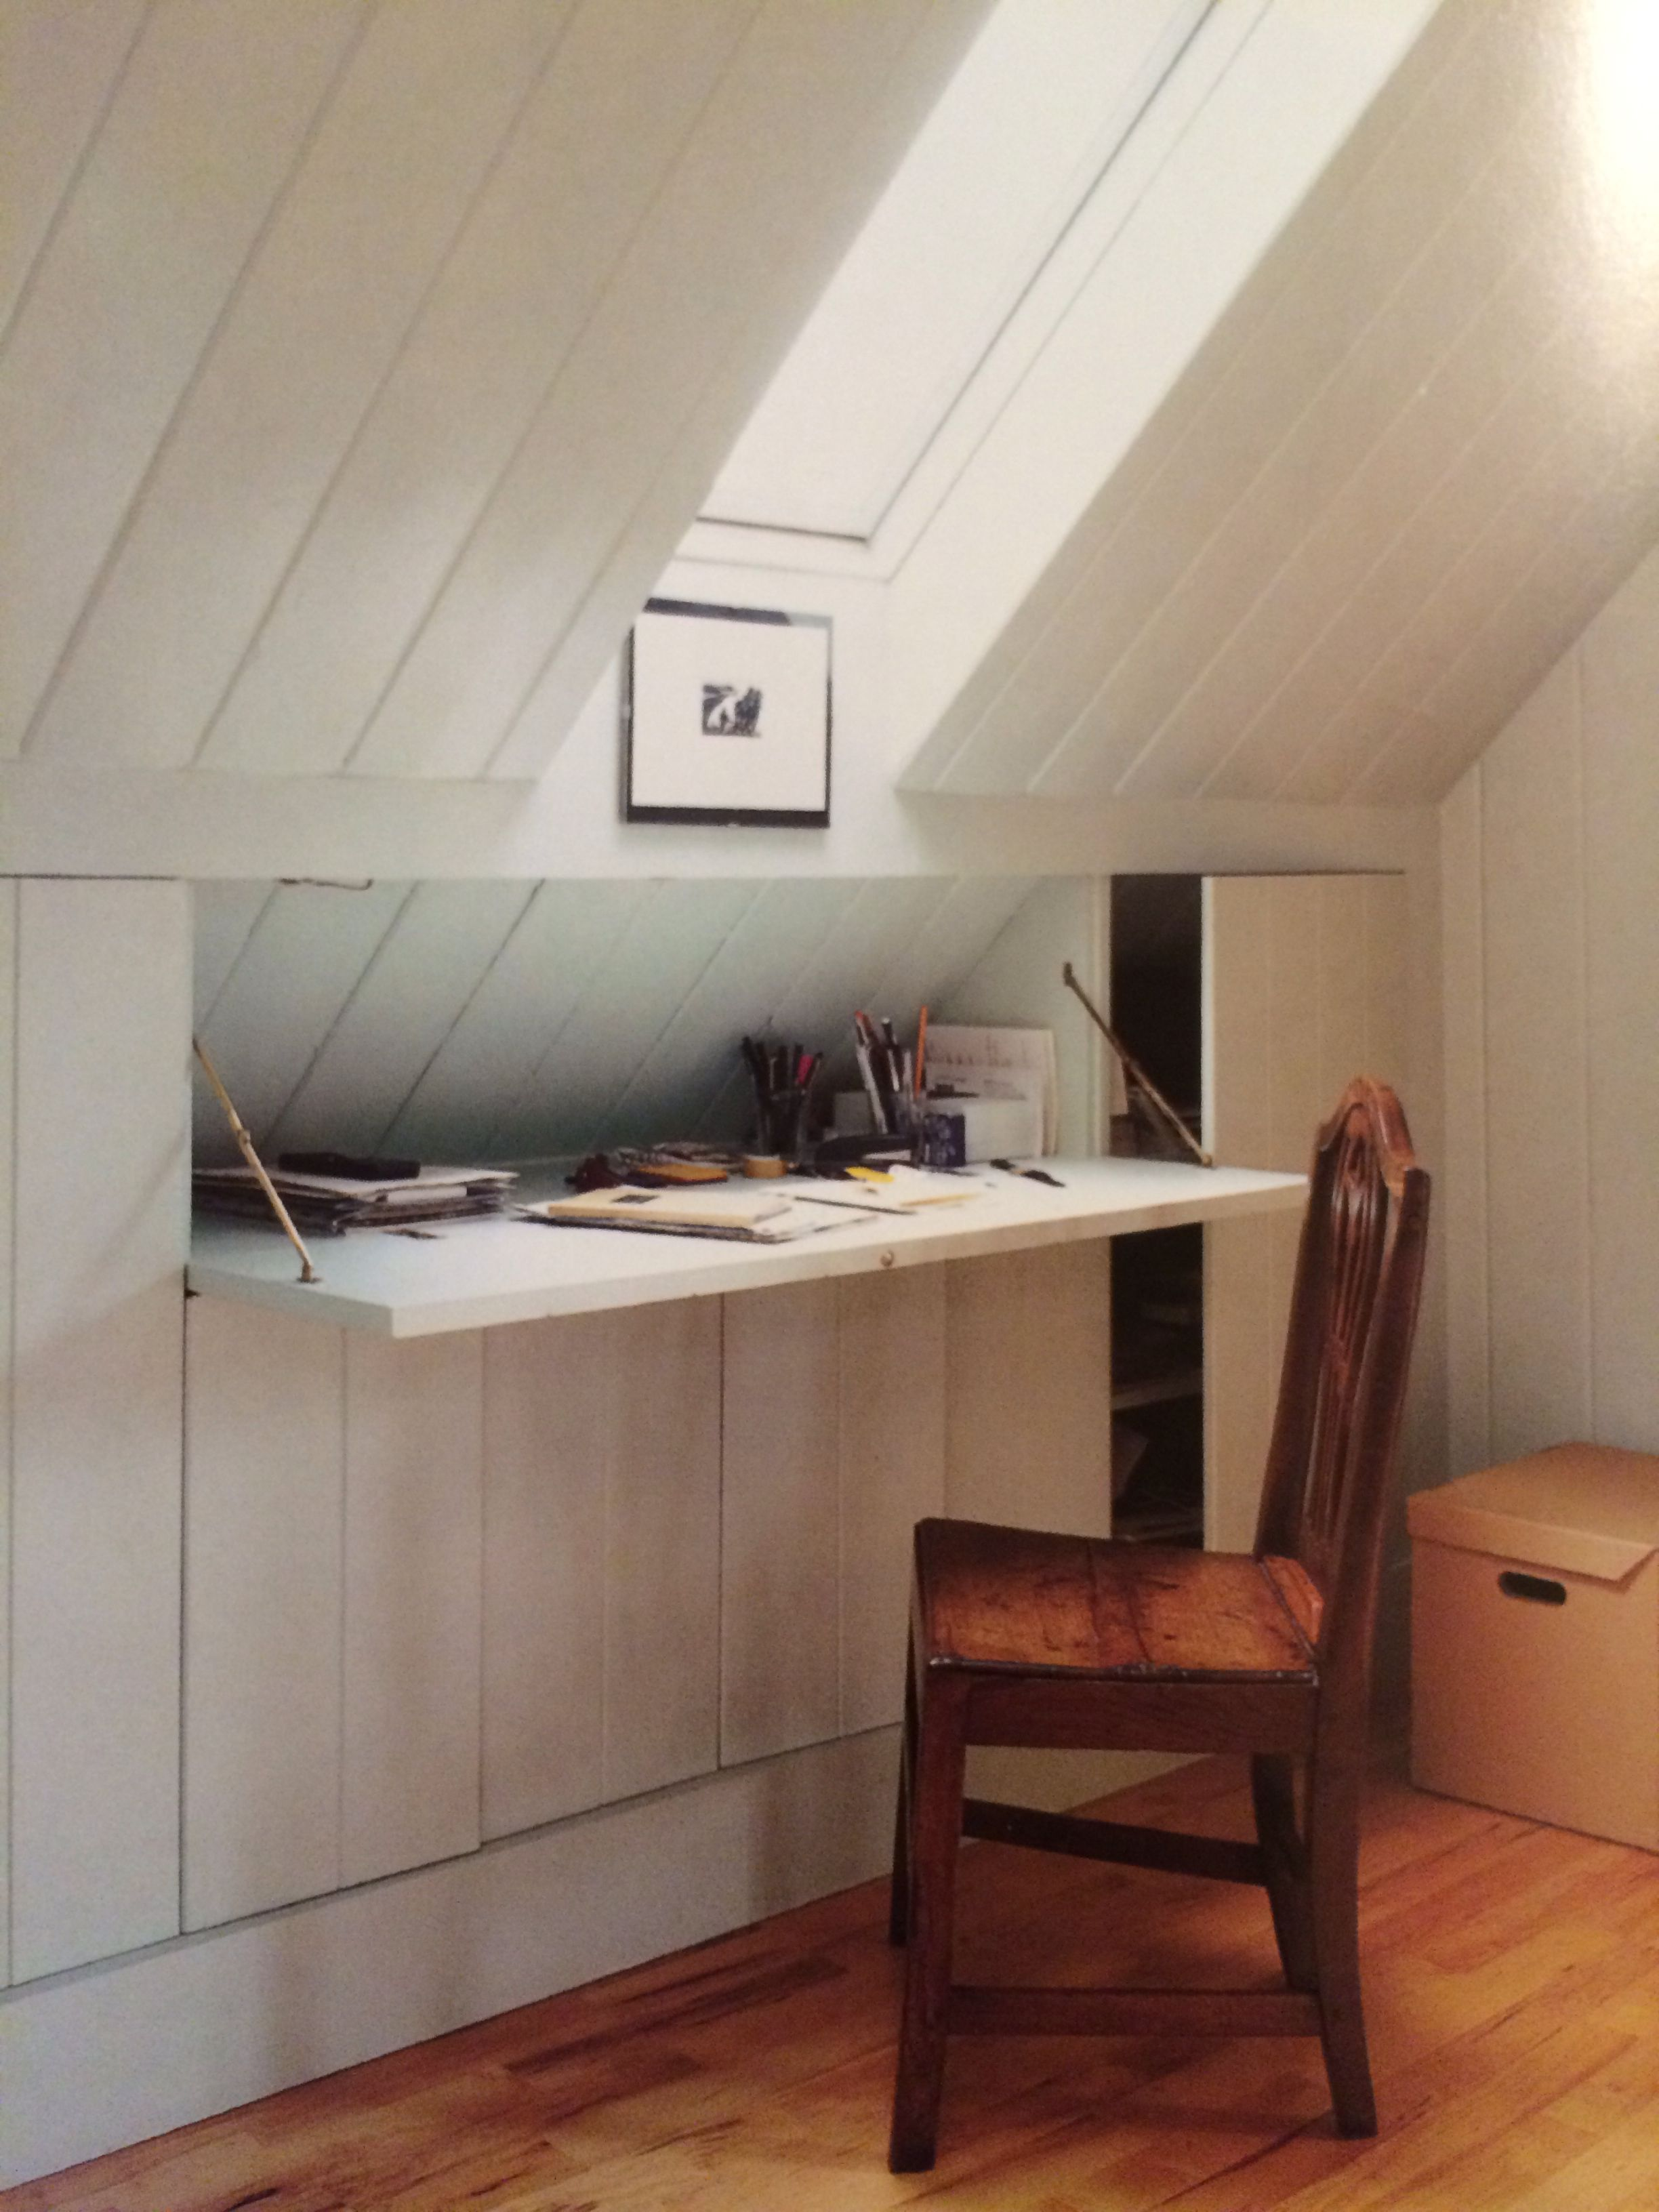 Attic Room Ideas - Low Ceiling Attic Bedroom Ideas -